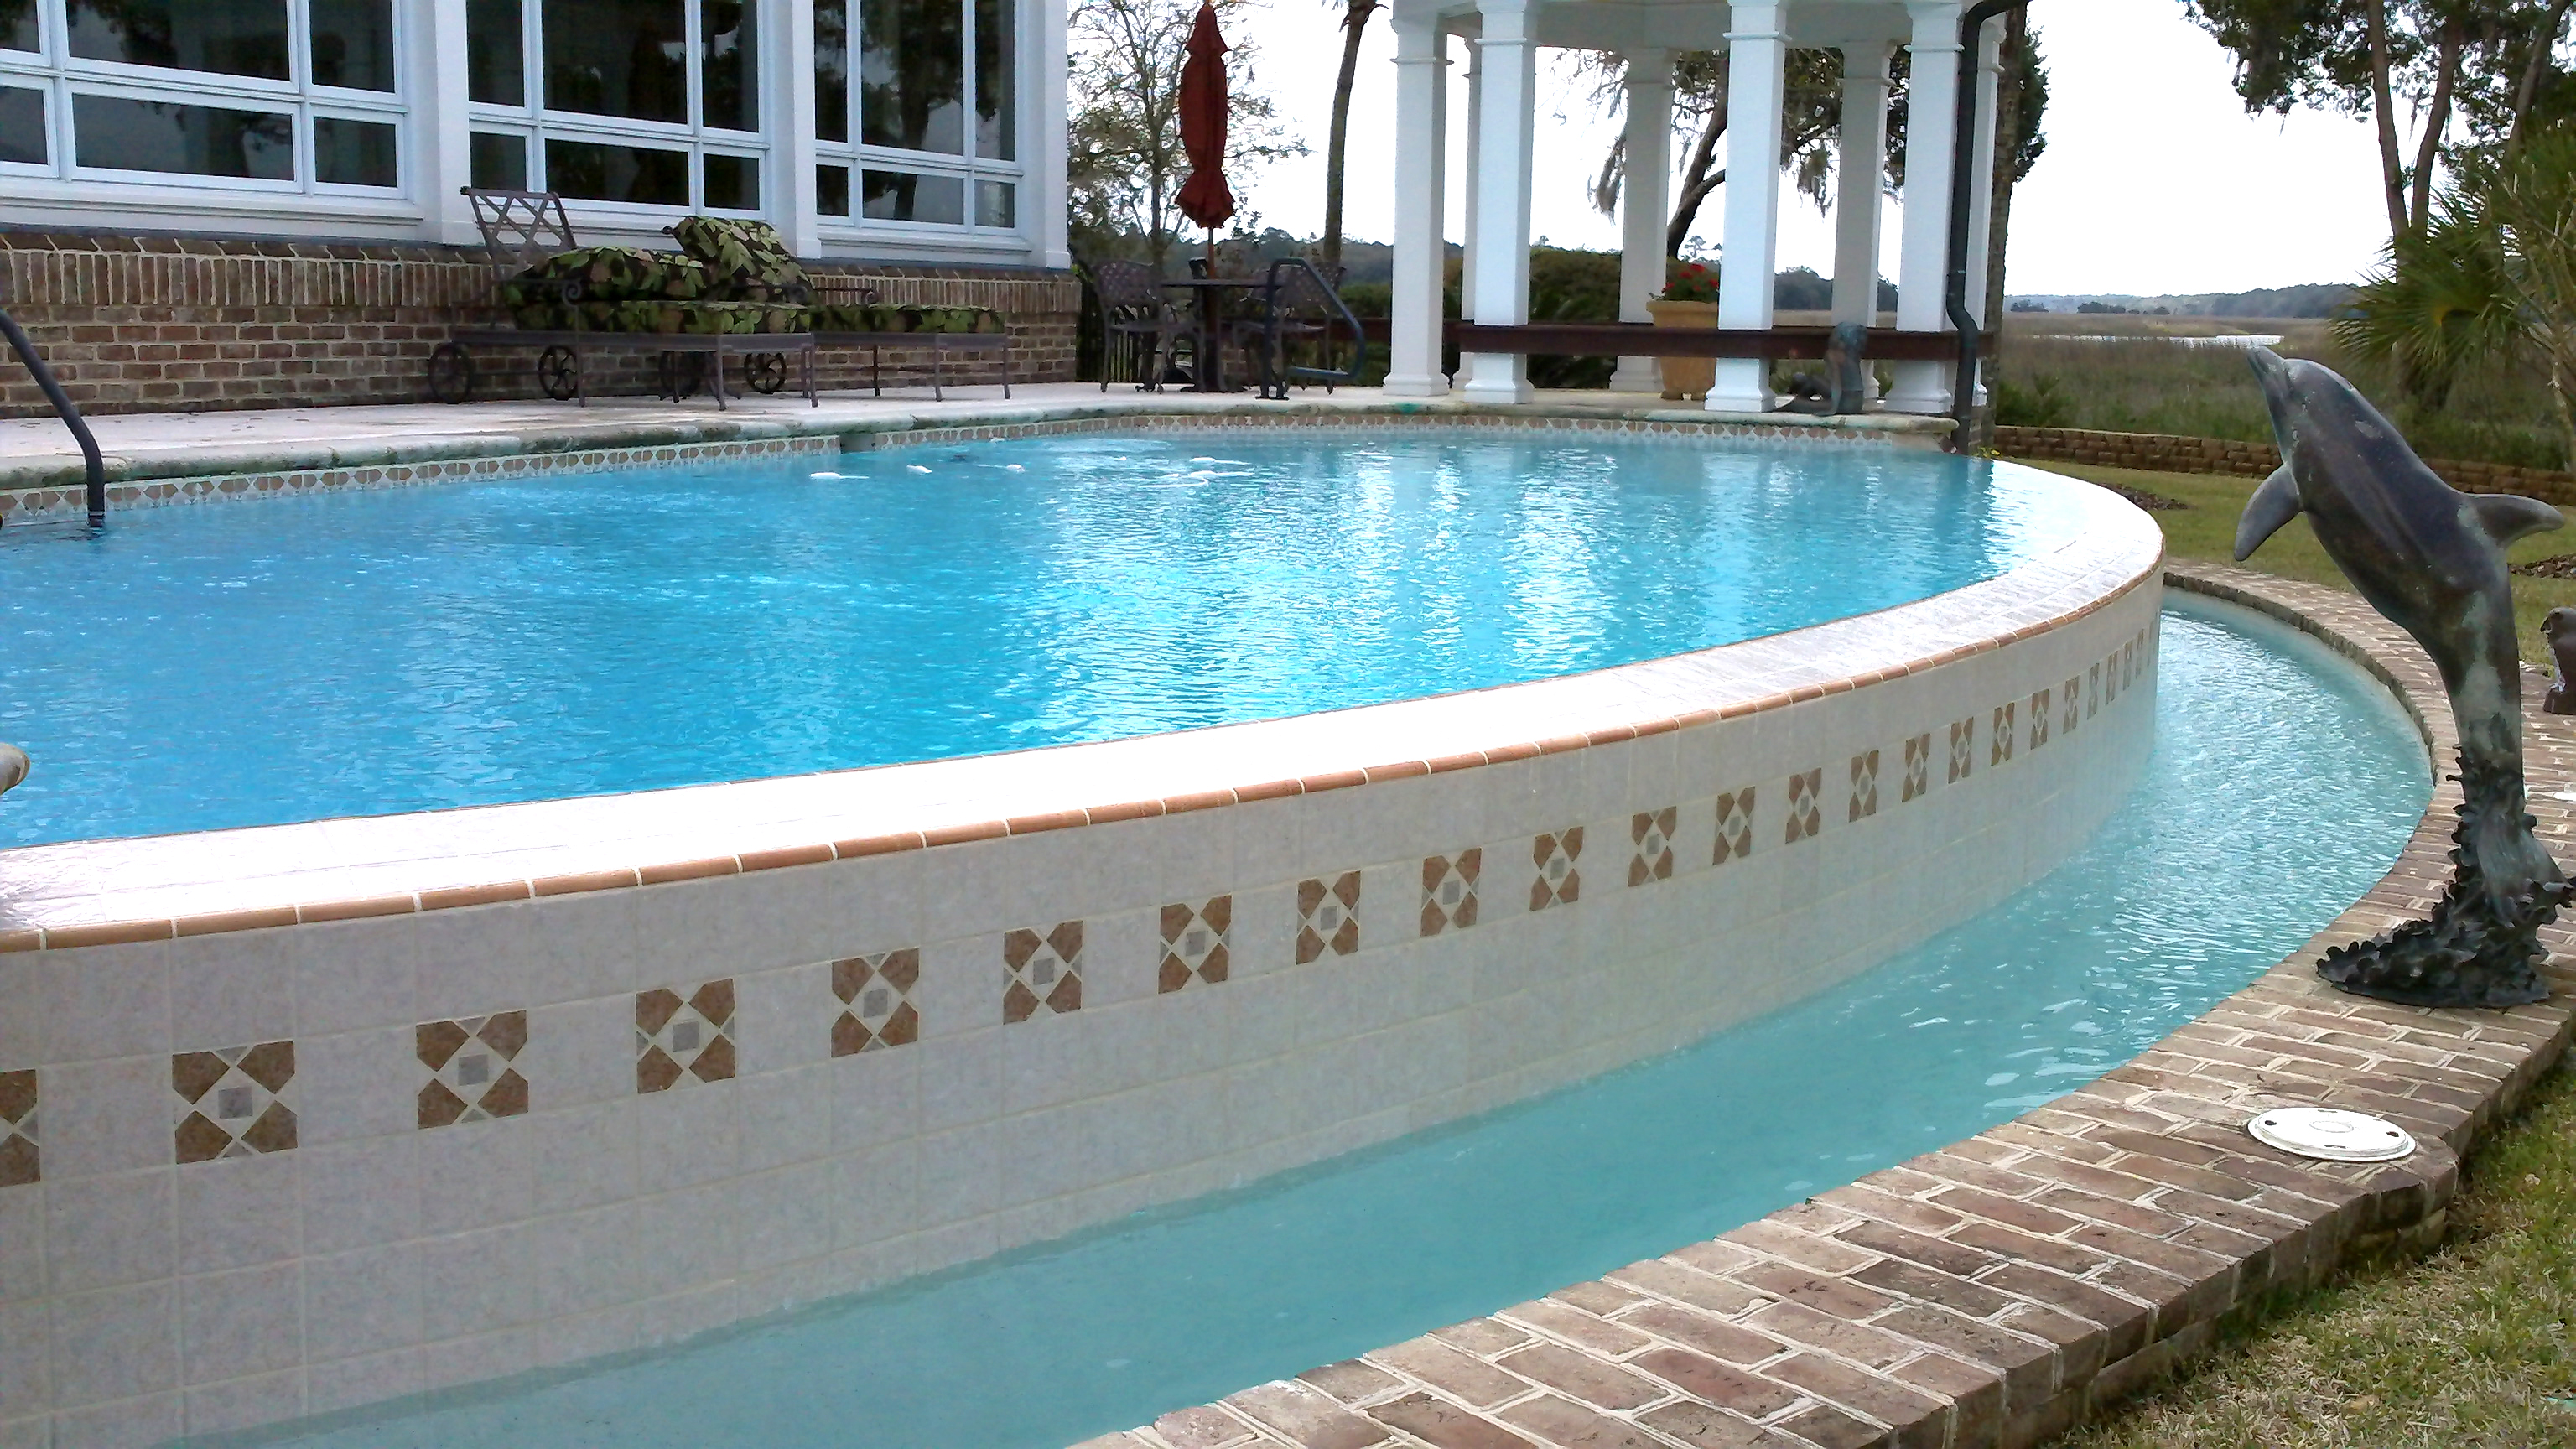 Types of pools we clean ejpoolservices for Types of swimming pool